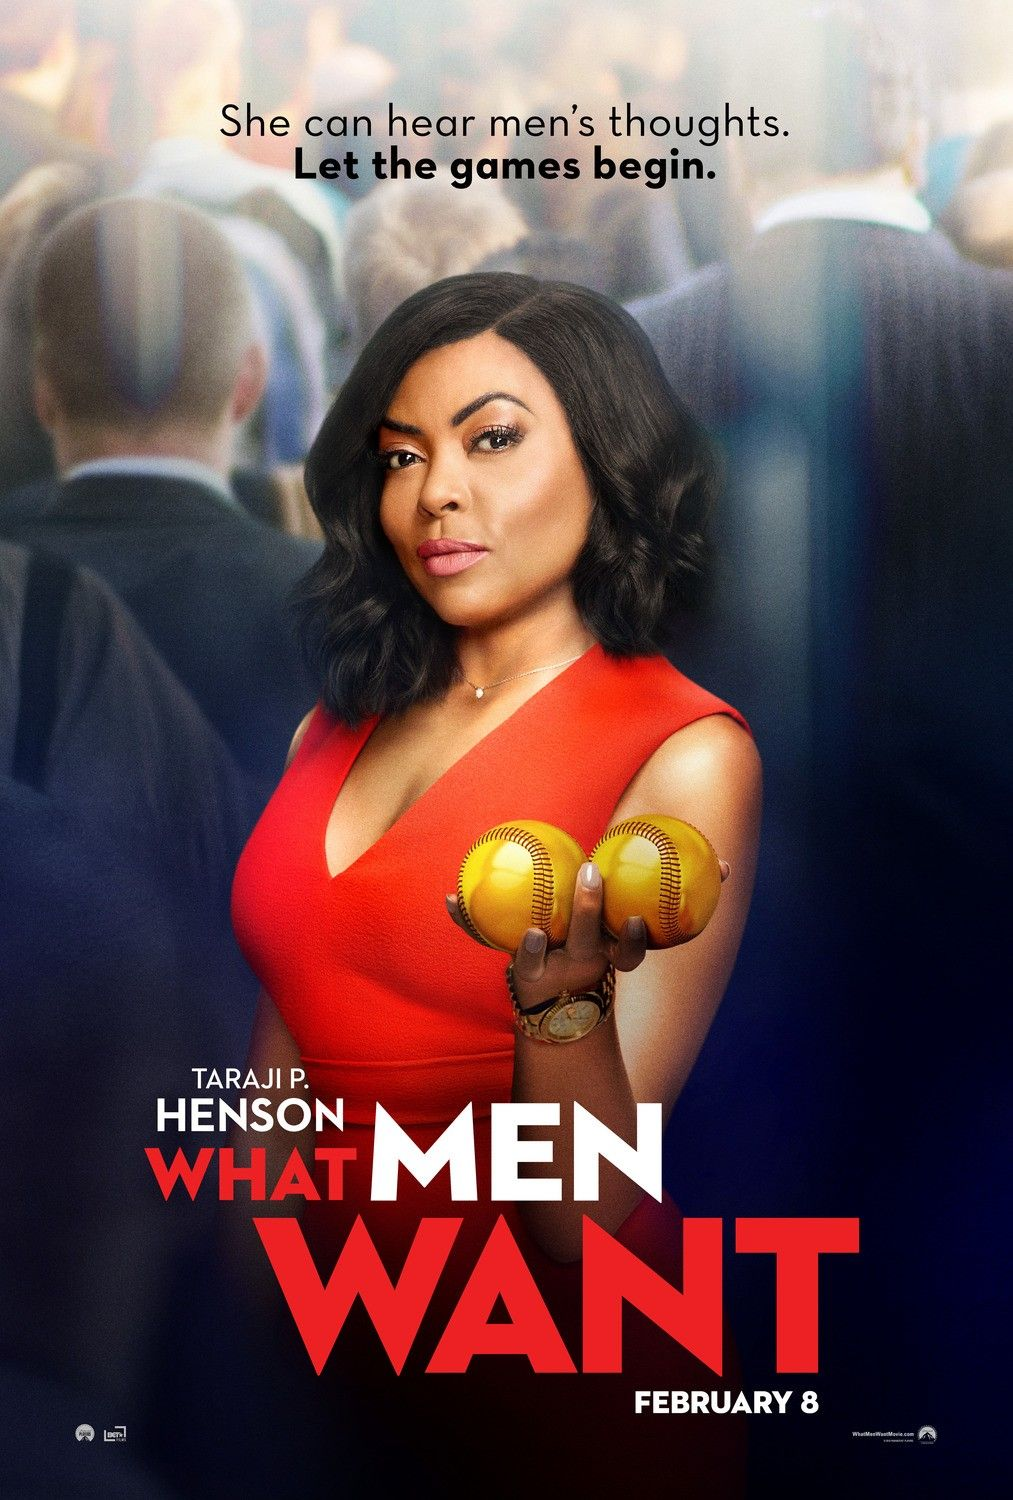 What Men Want | Movies in 2019 | Full movies download, Wanted movie